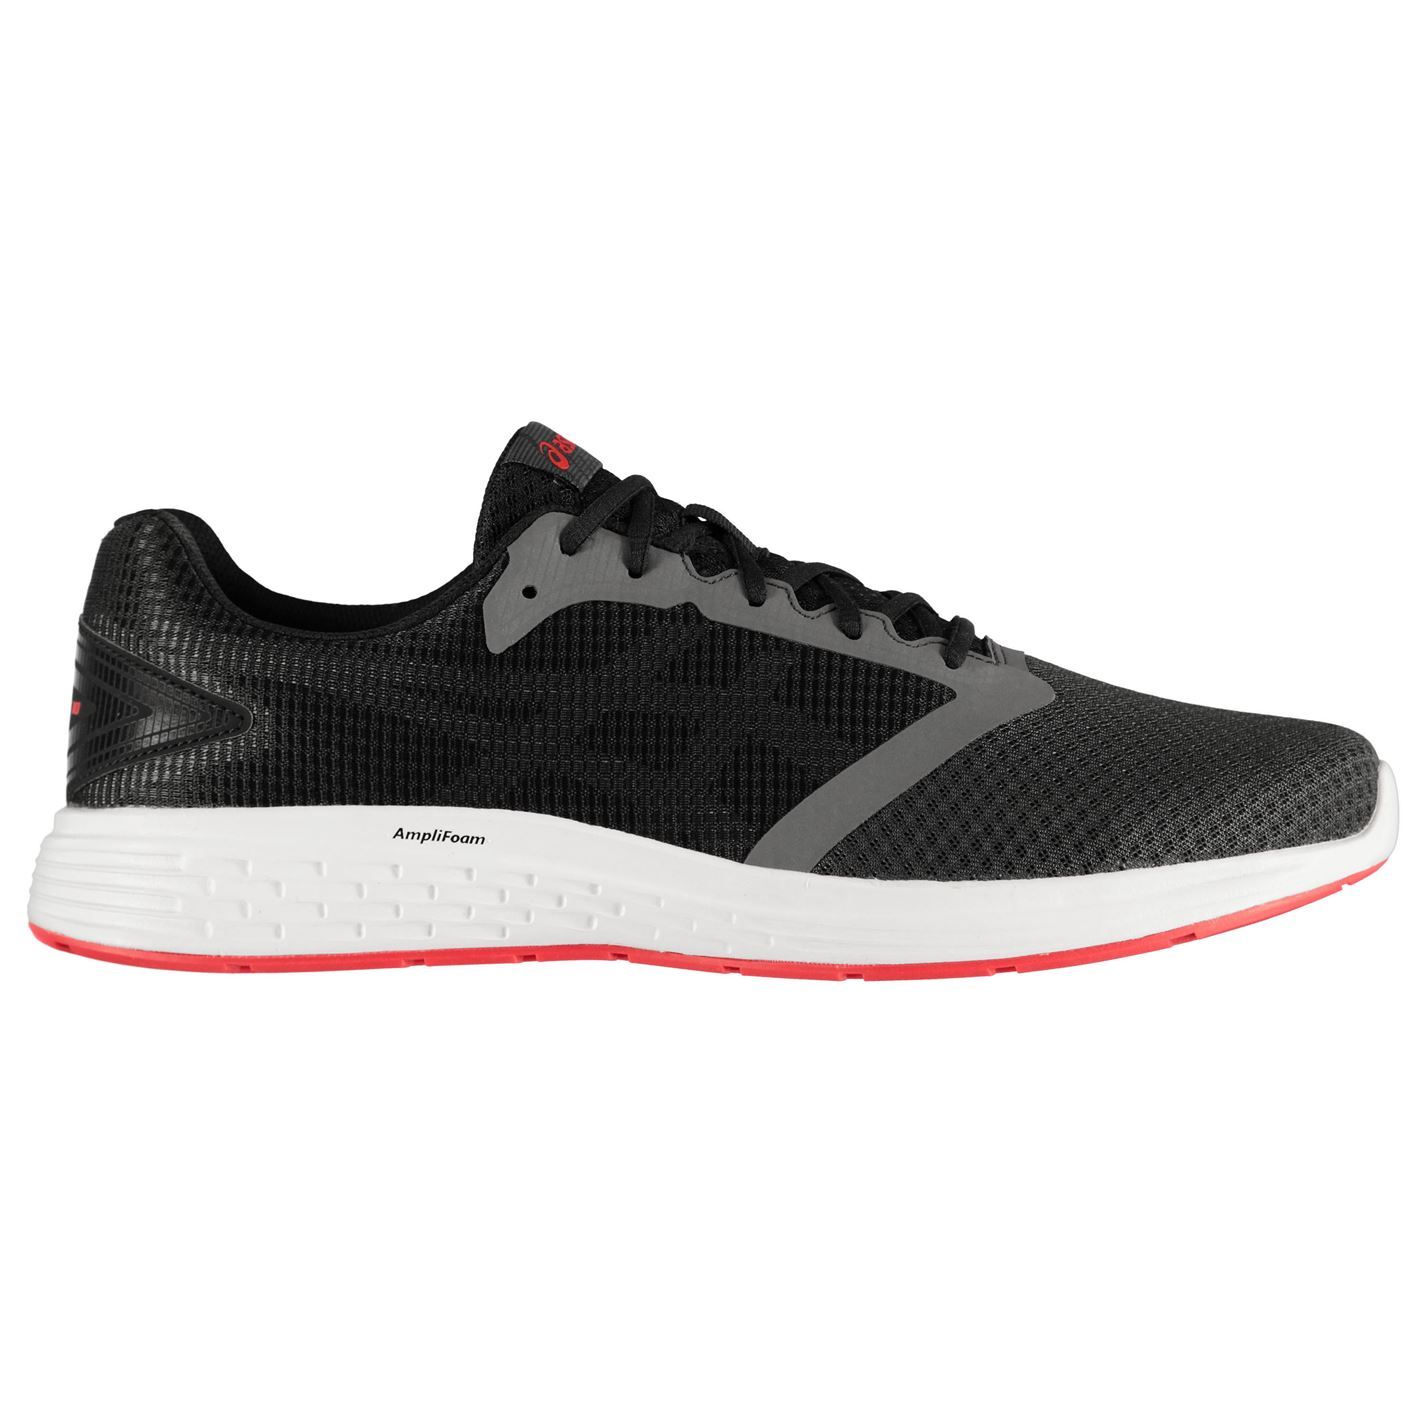 Asics Runners  Uomo Patriot 10 Trainers Runners Asics Lace Up Mesh Upper 3a5c3e